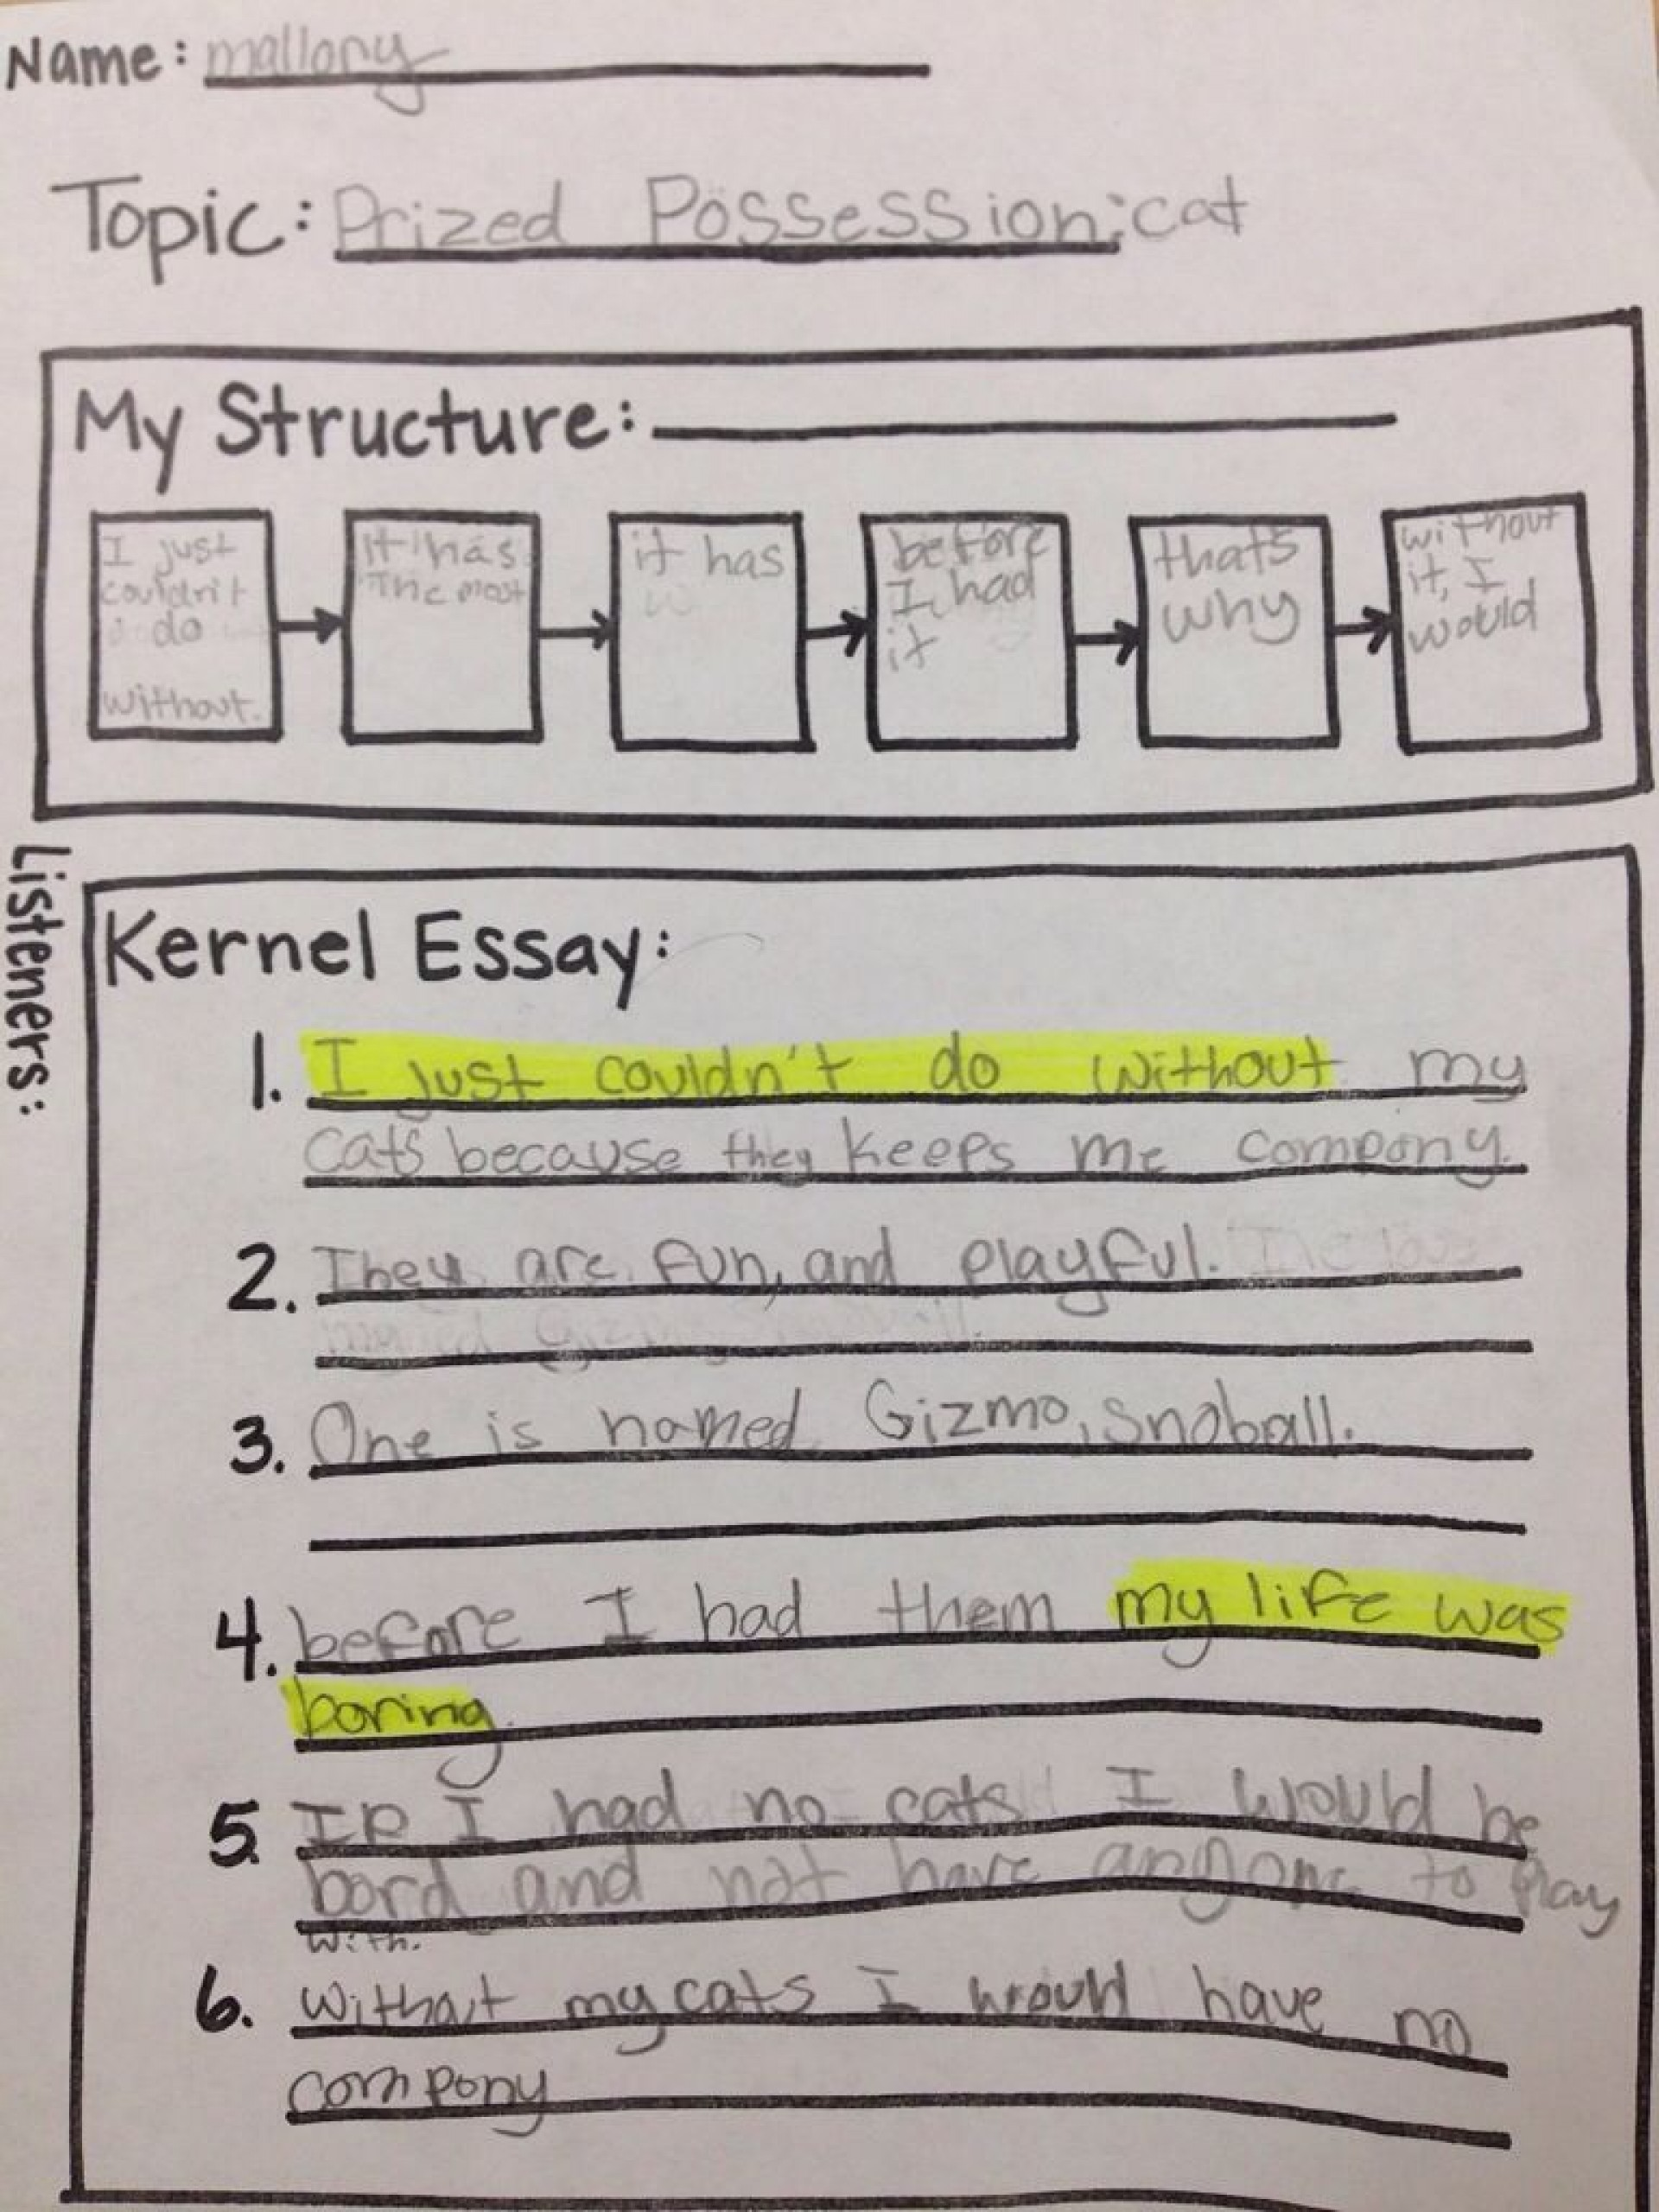 008 Kernel Essay Staggering Pdf Video Text Structures 1920